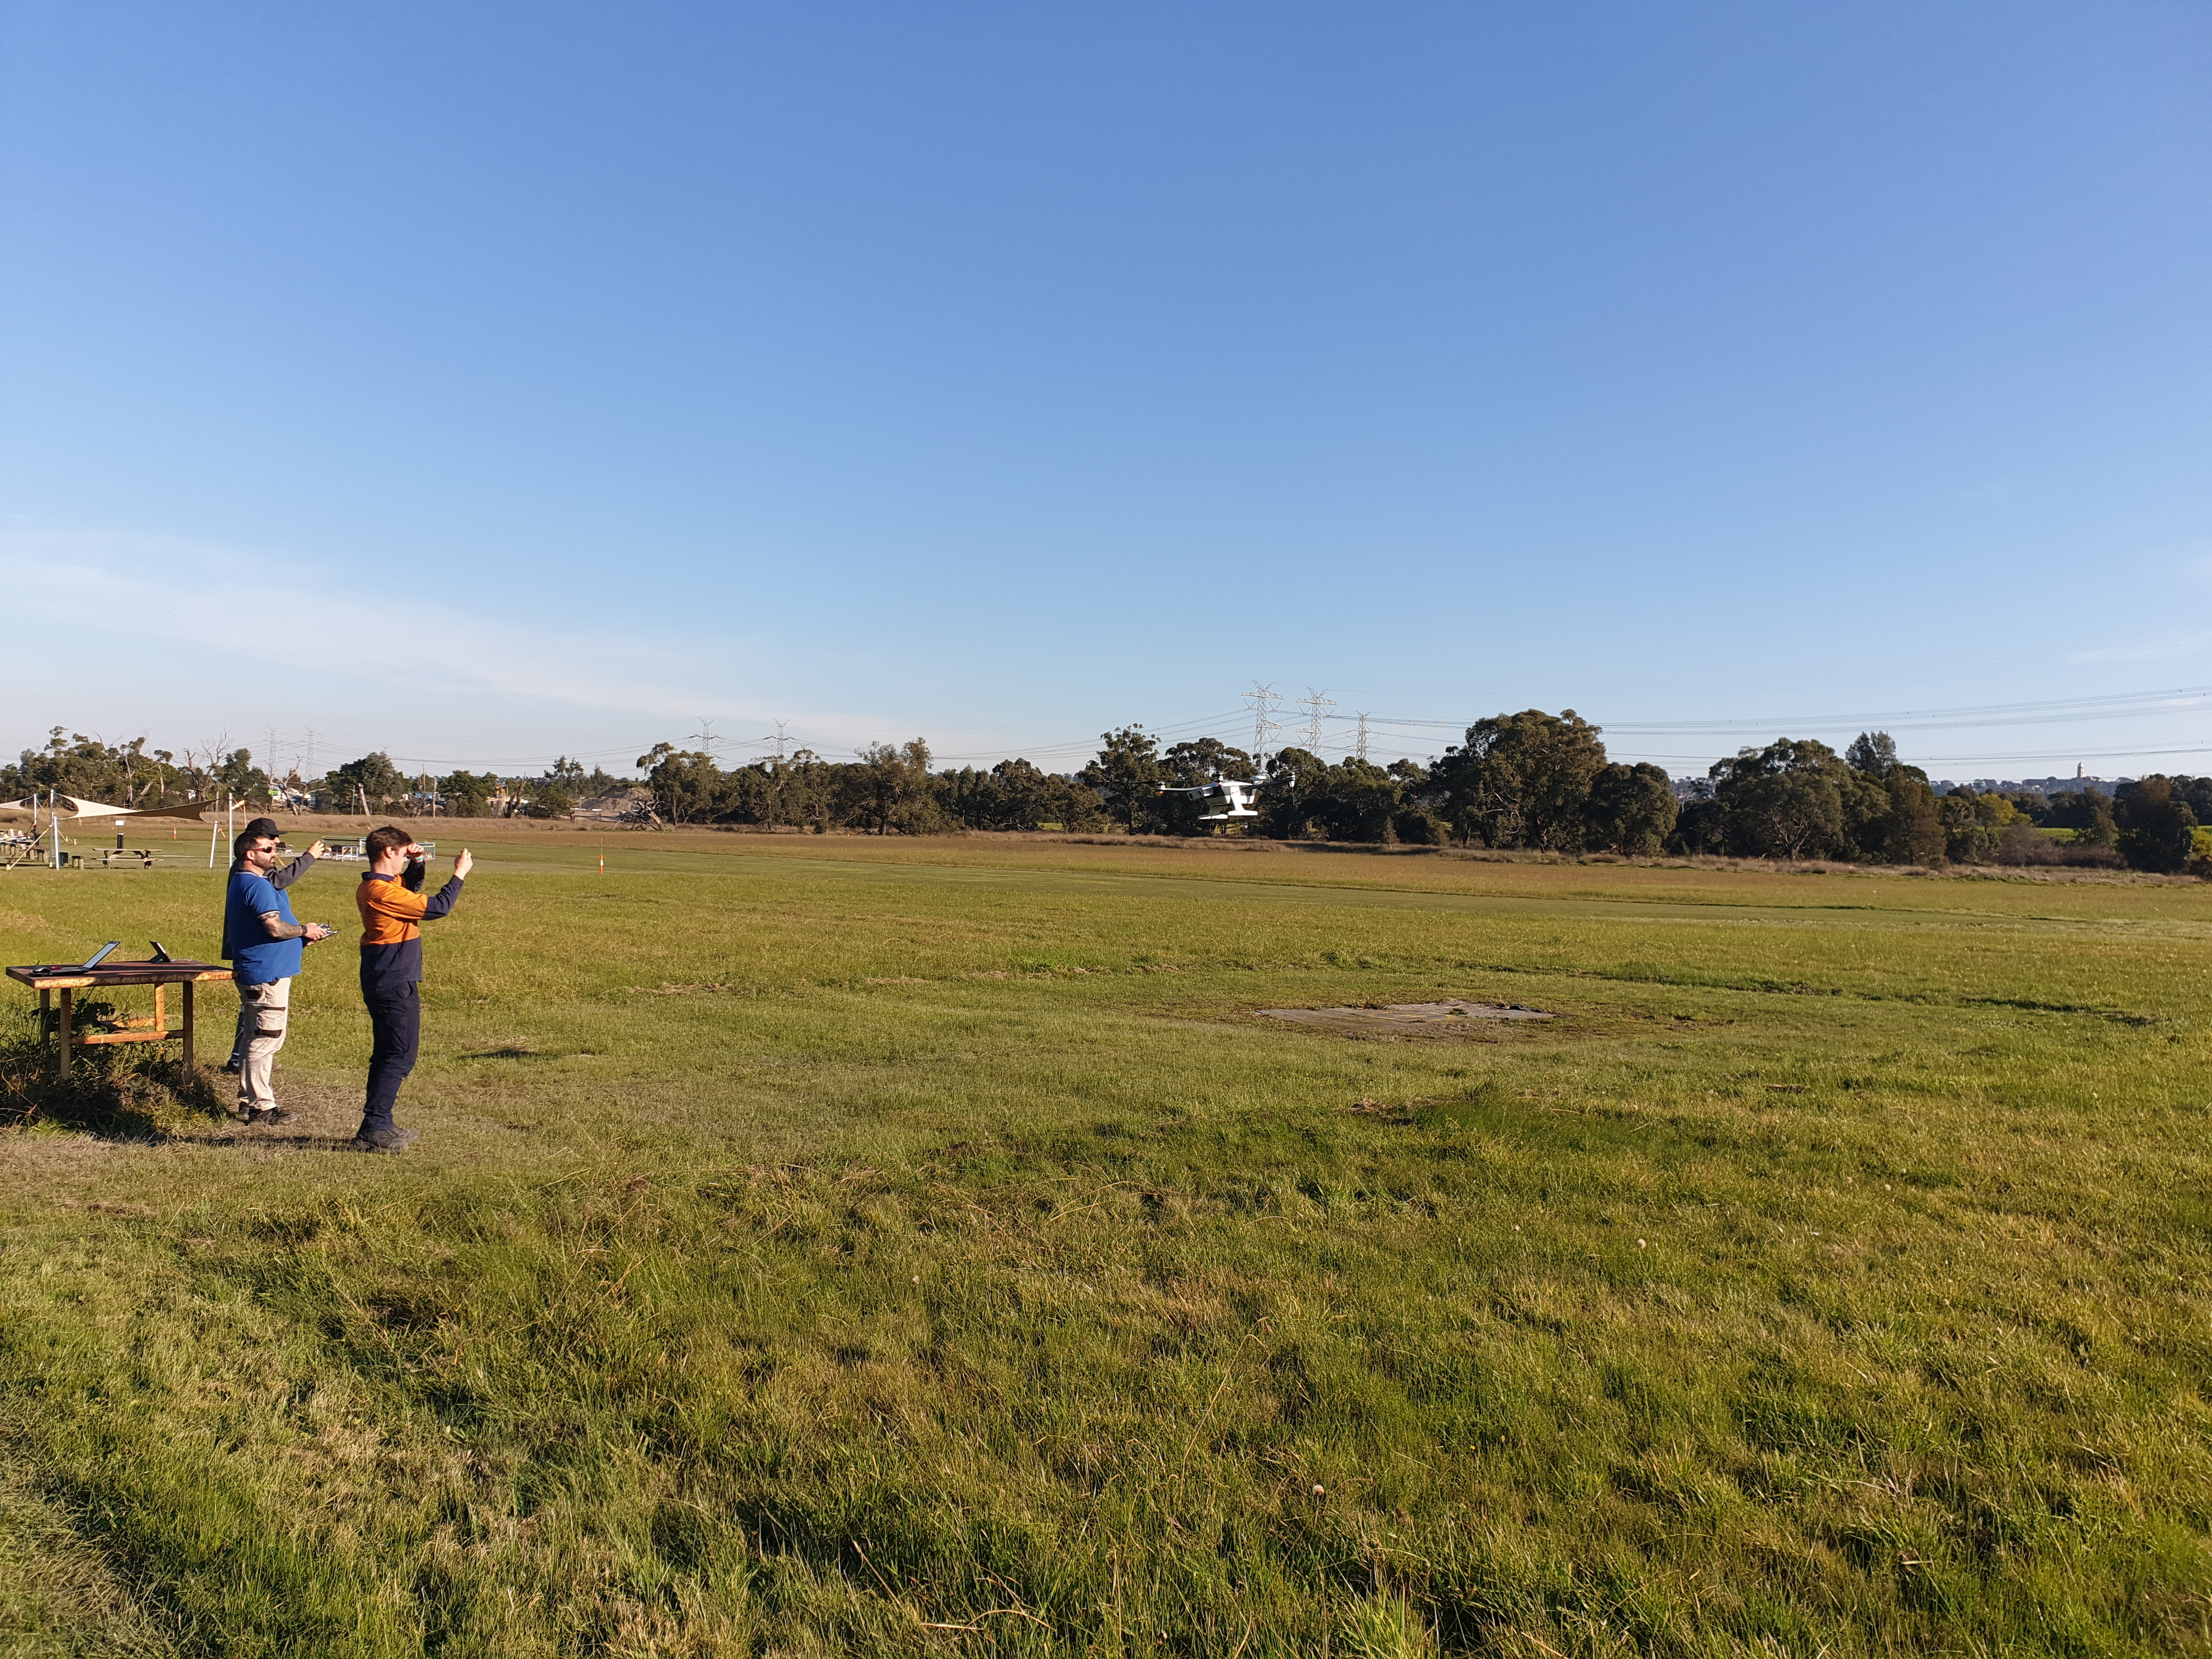 A person being trained to operate a drone in a wide field.